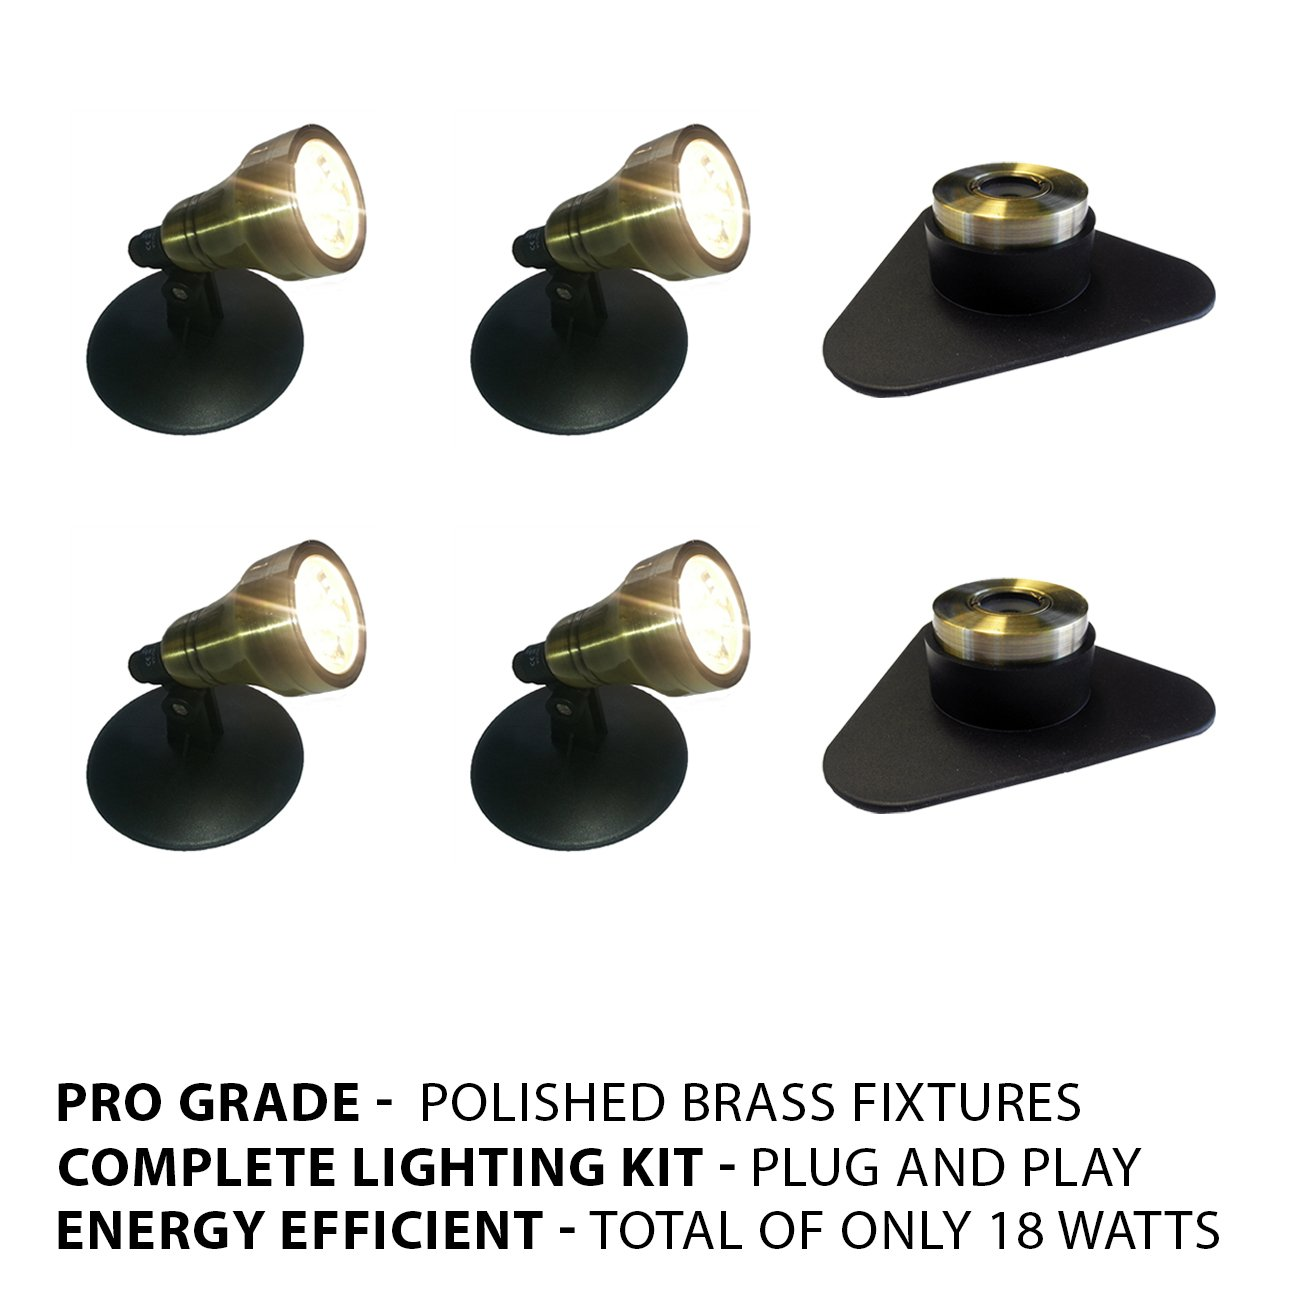 Patriot Brass LED Waterproof Pond and Landscape Lighting 18 Watt Light Kit P-D4 by Patriot